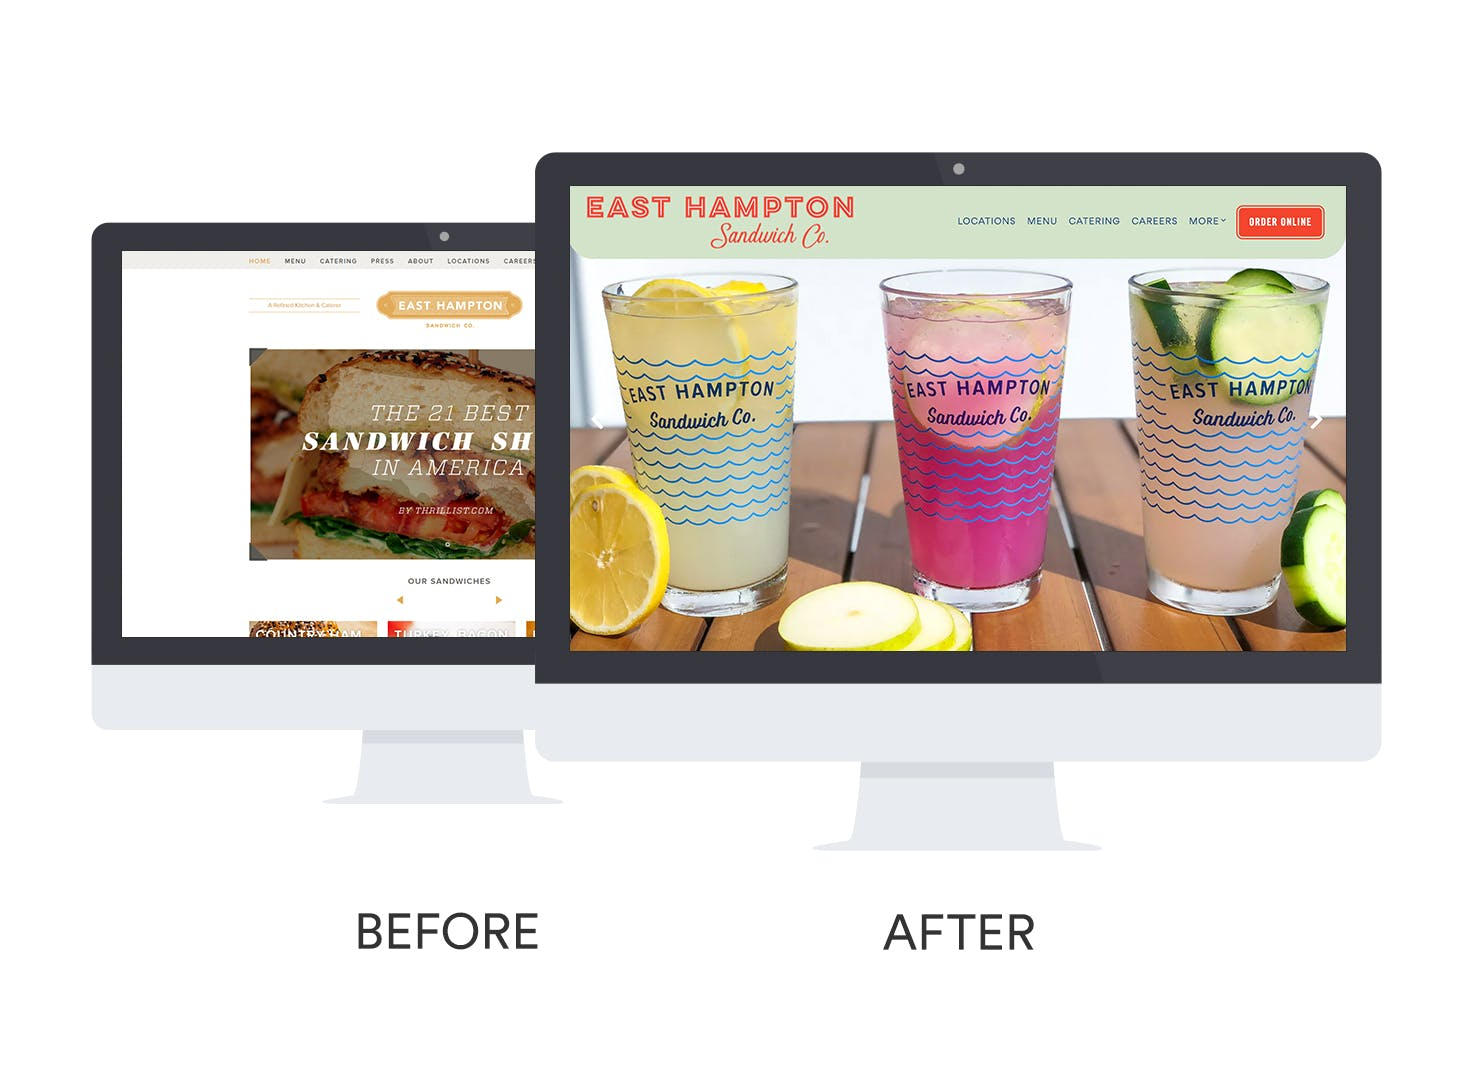 Before and after of East Hampton Sandwich Co.'s website